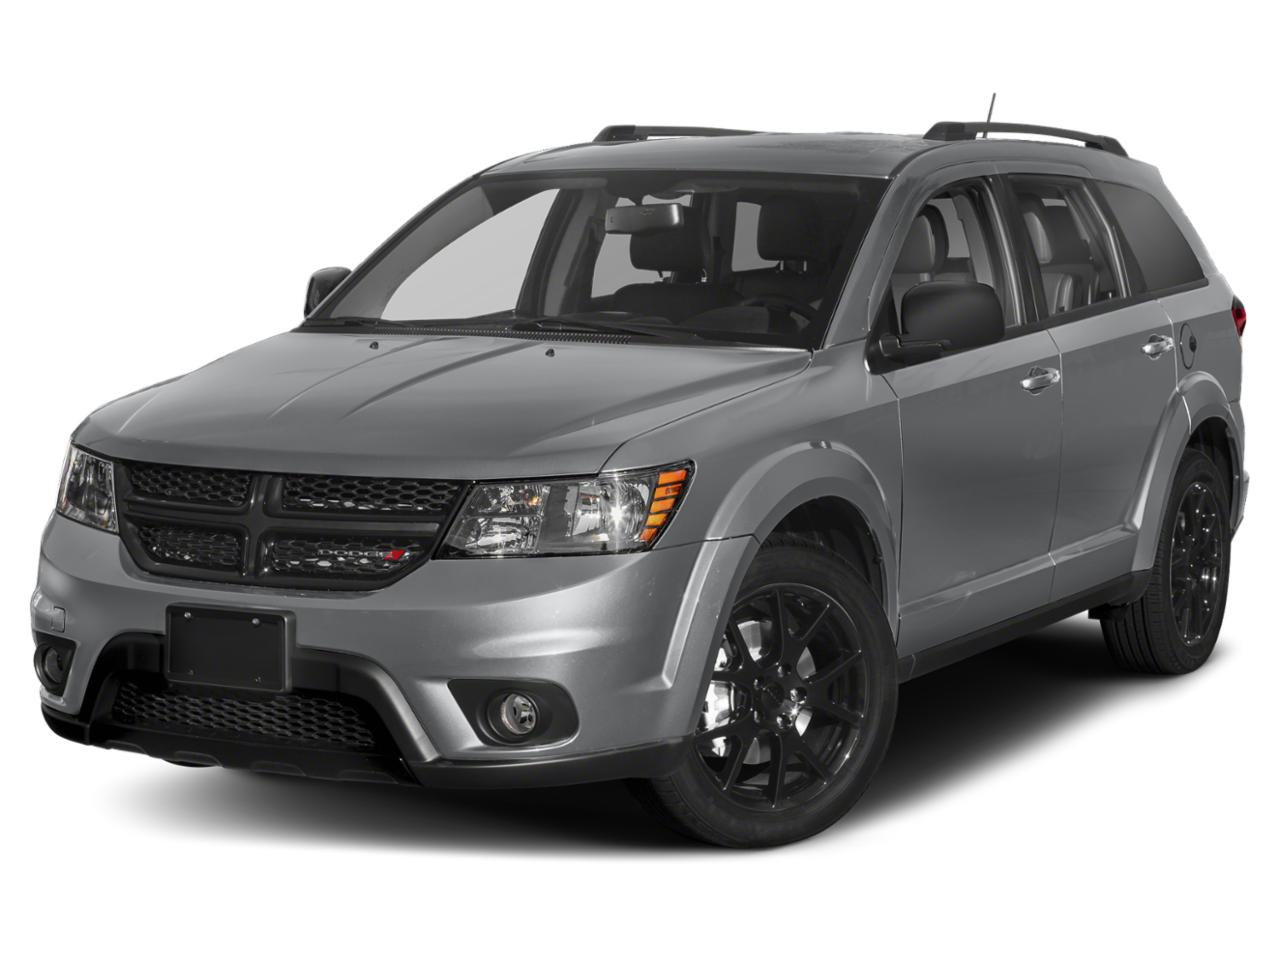 2018 Dodge Journey Vehicle Photo in Medina, OH 44256